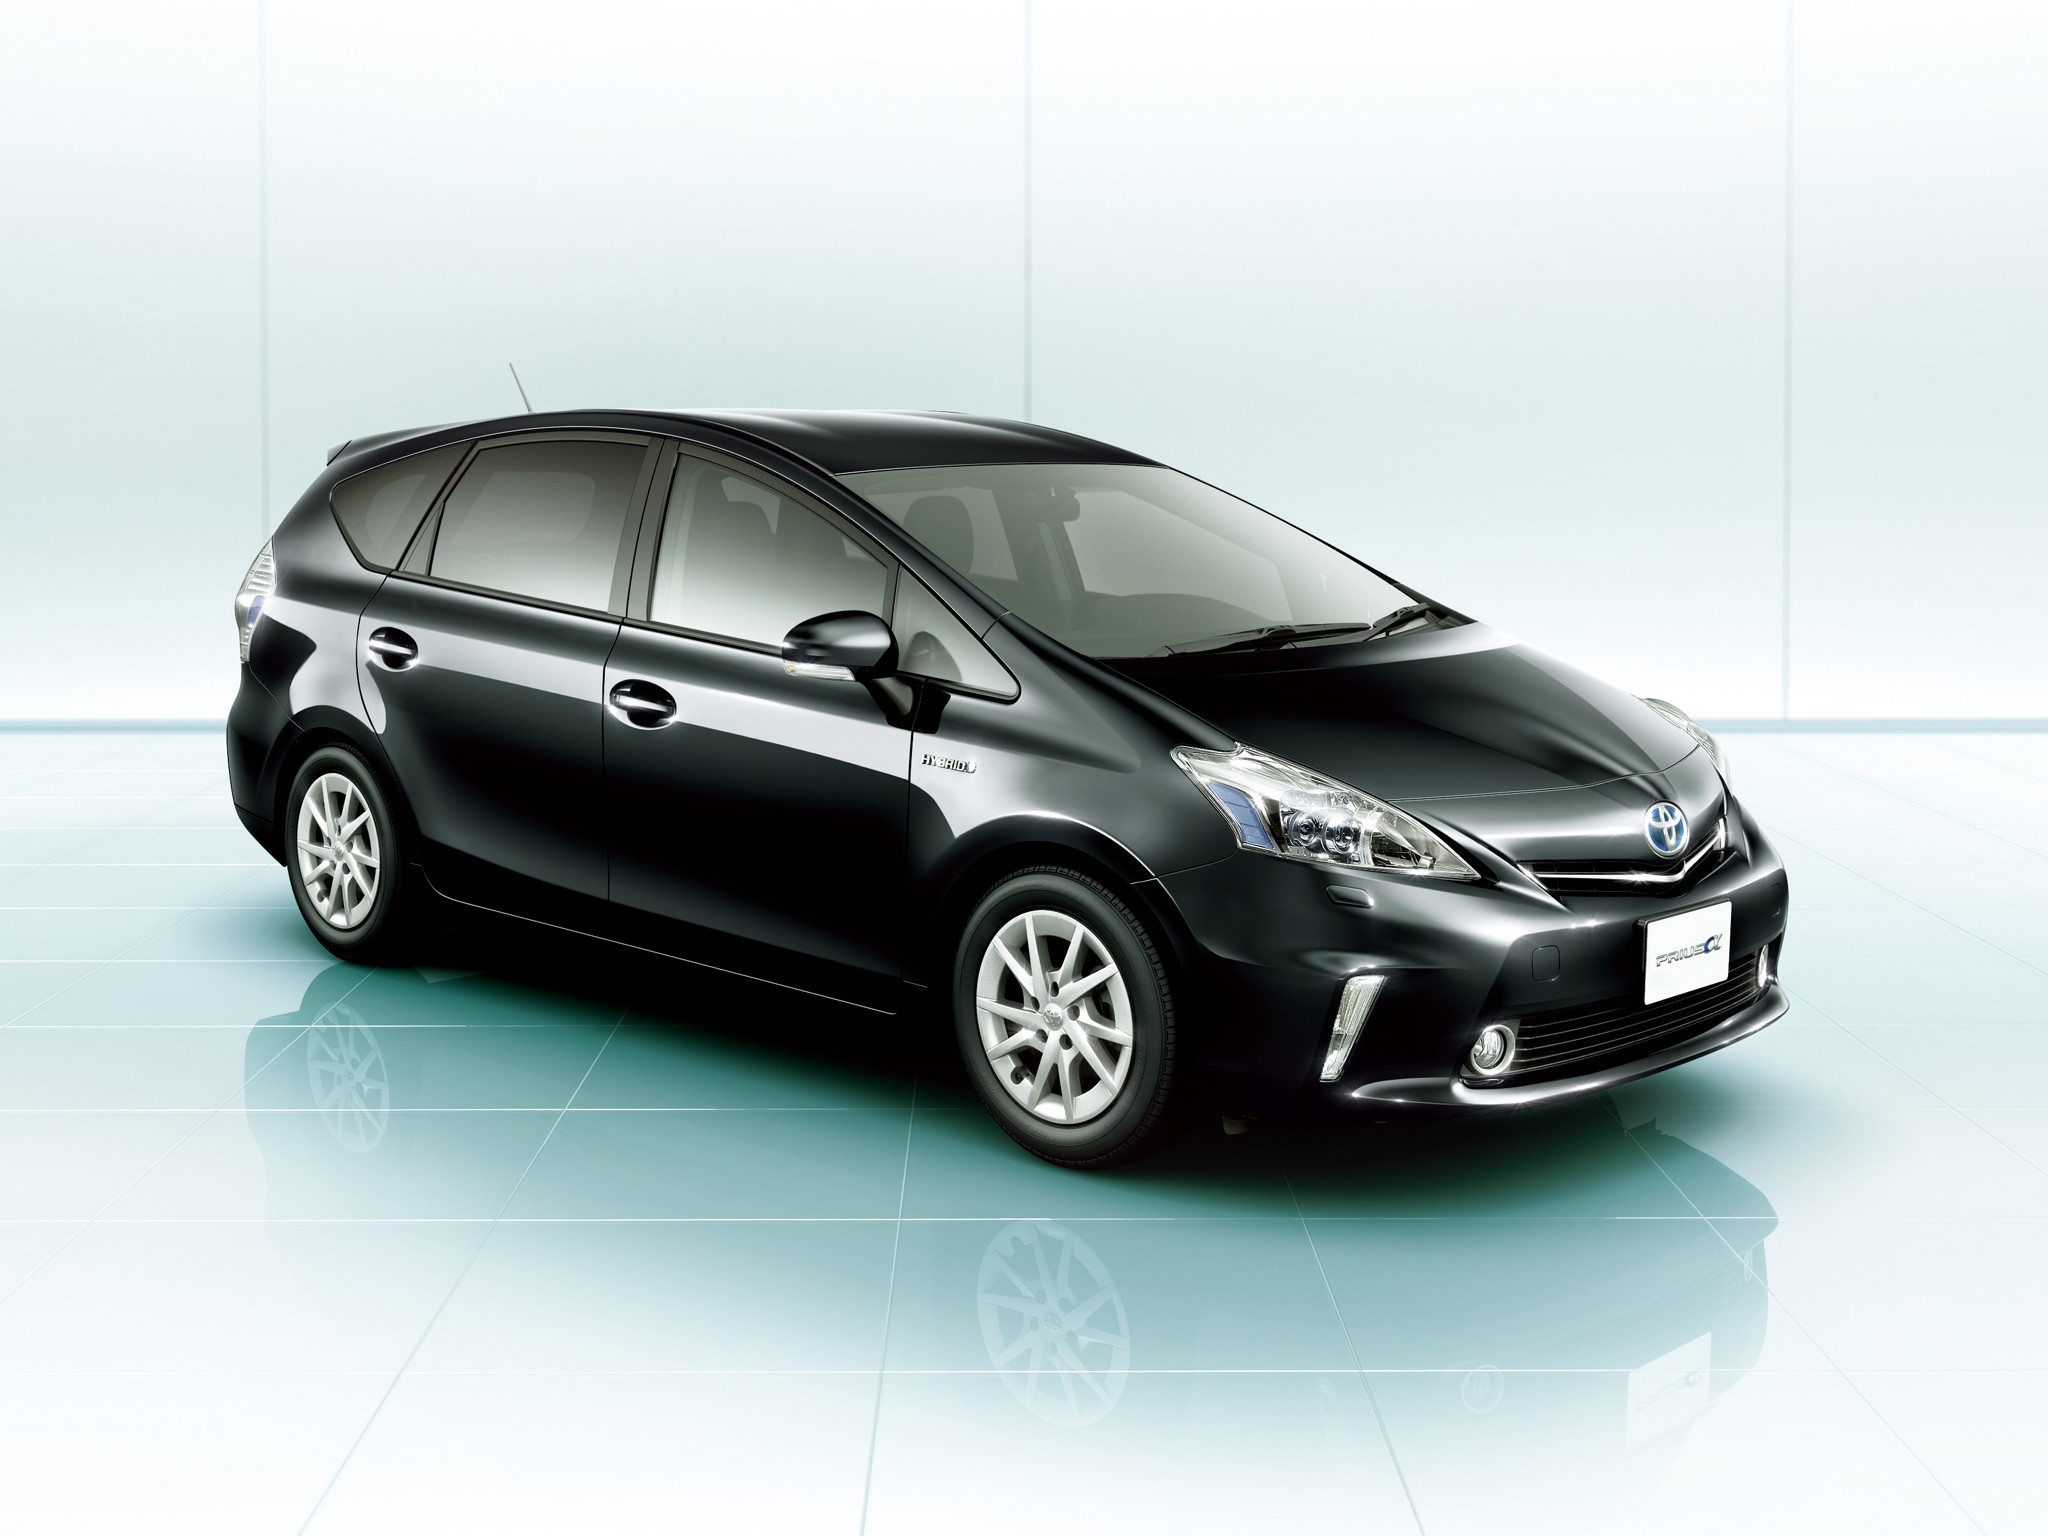 toyota prius v prius specs 2011 2012 2013 2014 2015 autoevolution. Black Bedroom Furniture Sets. Home Design Ideas